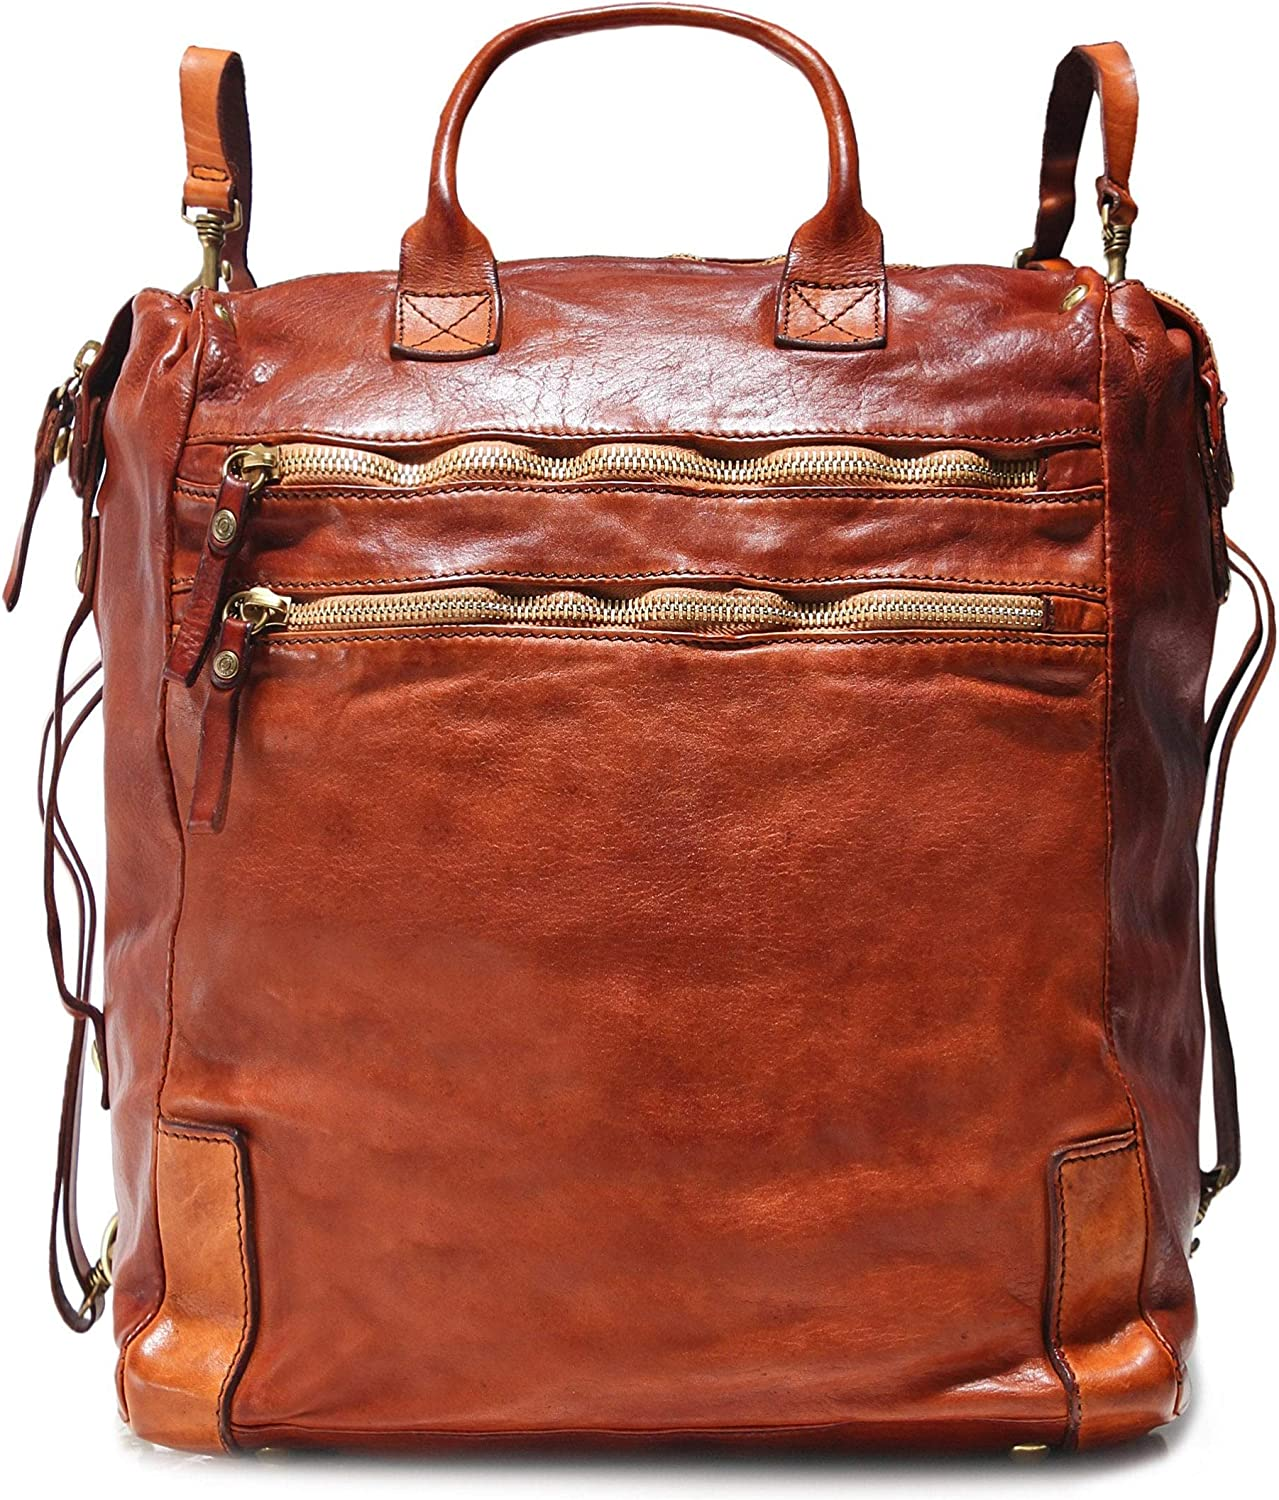 Campomaggi Men's Leather Shopper Backpack One Size Cognac